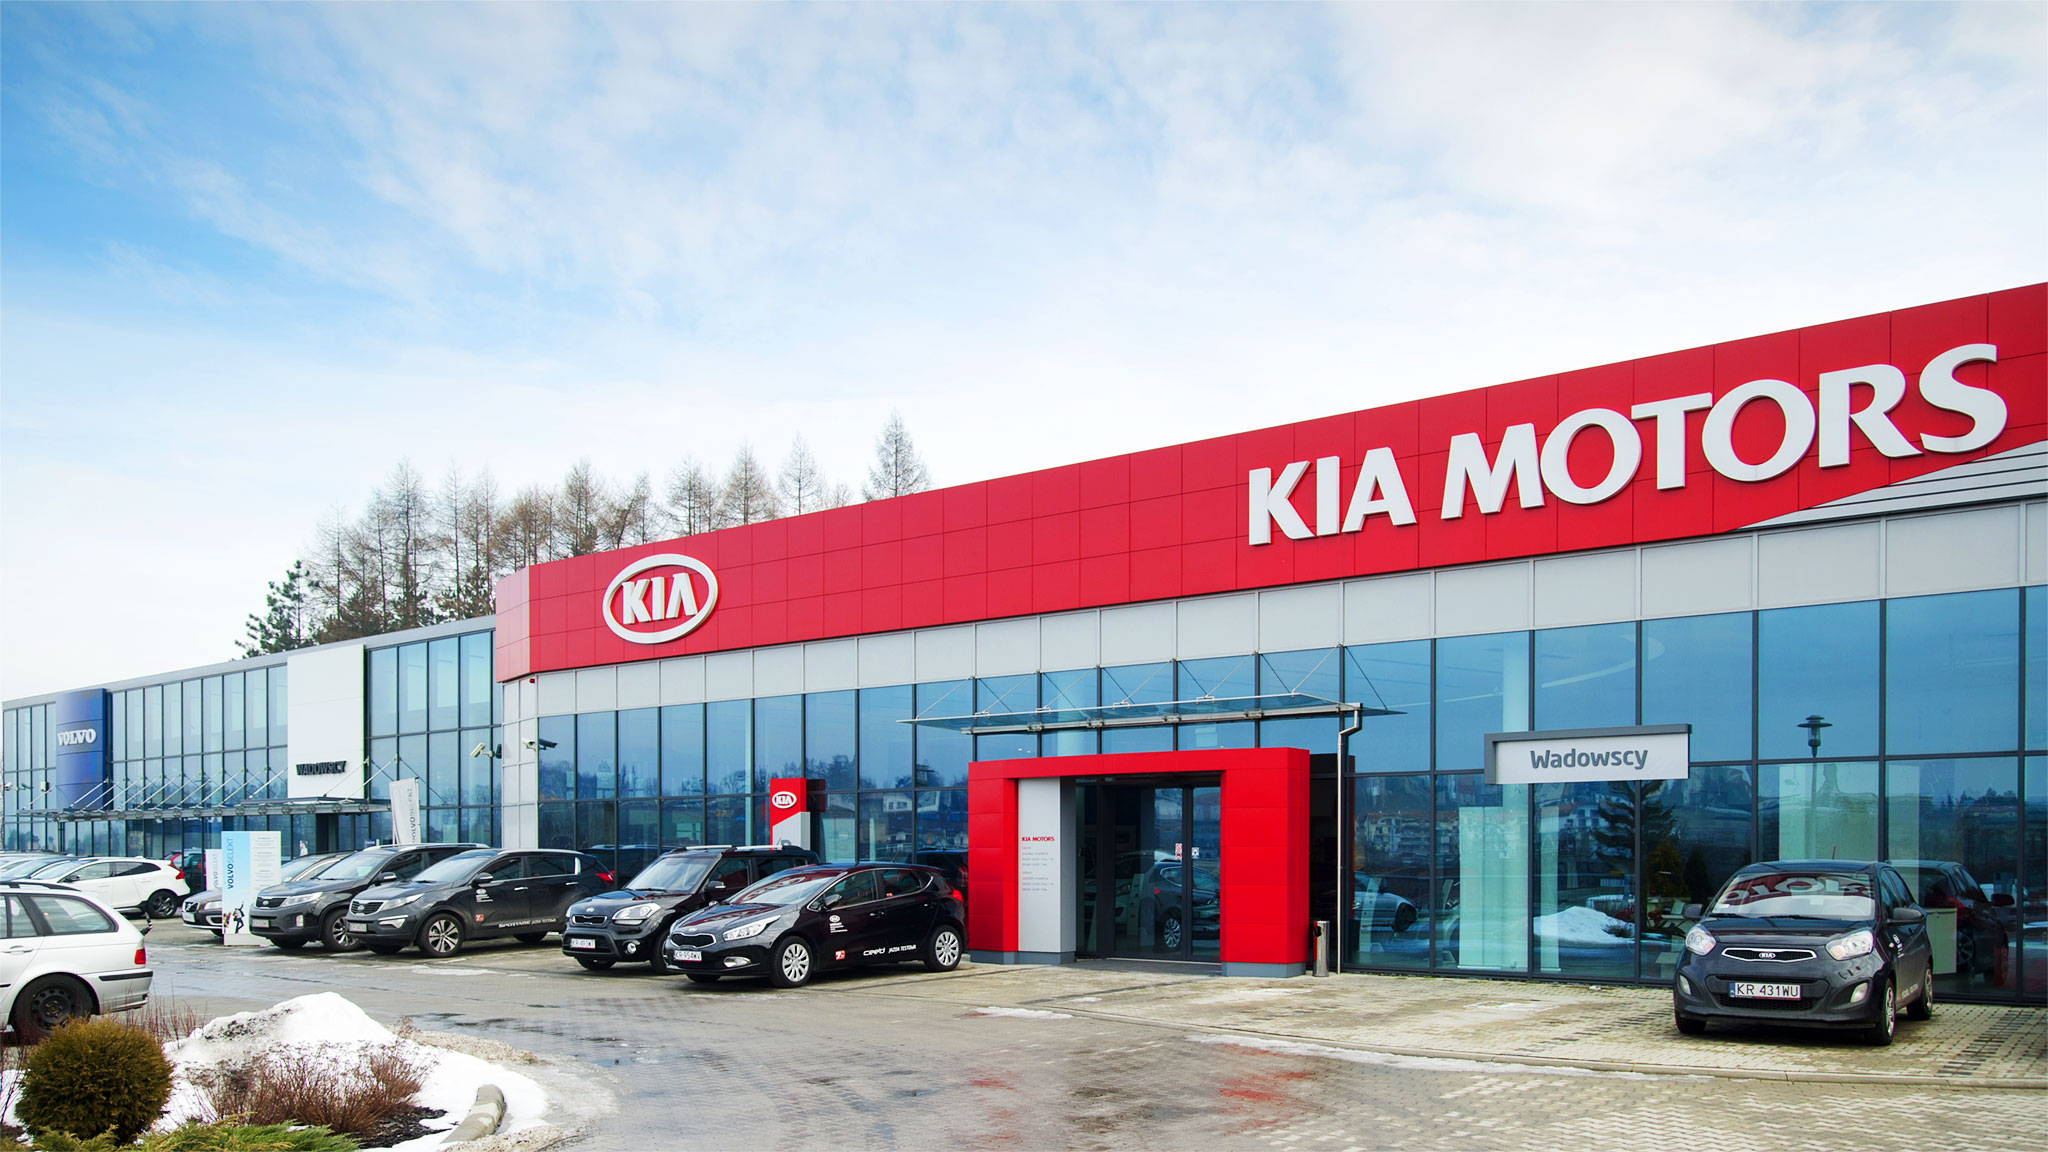 Dealership and garage of volvo and kia motors poland Kia motor dealers